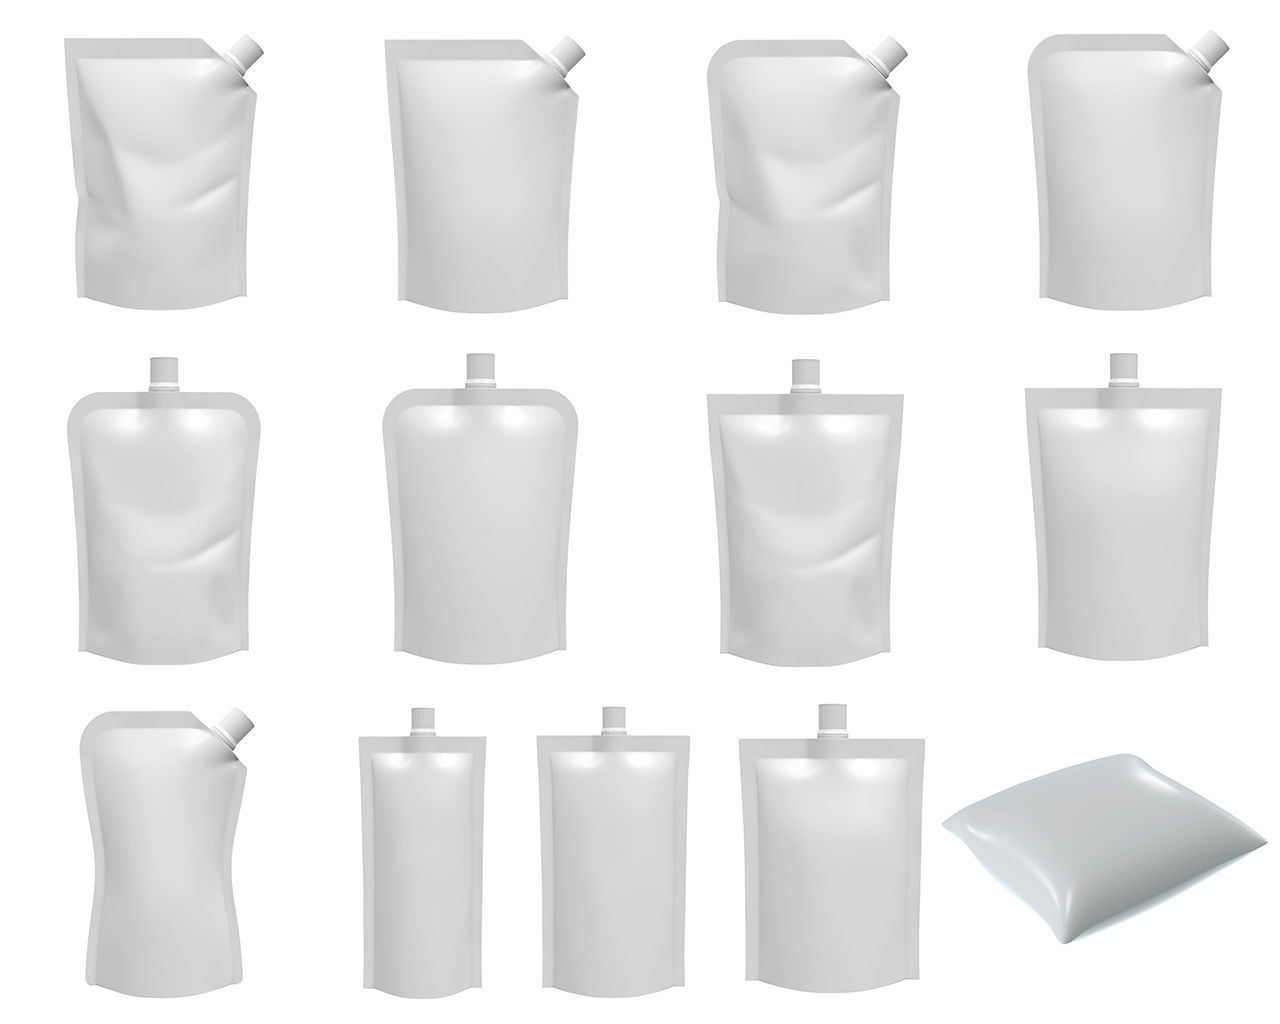 Blank Pouch Bags With Spout Lid Mock Up